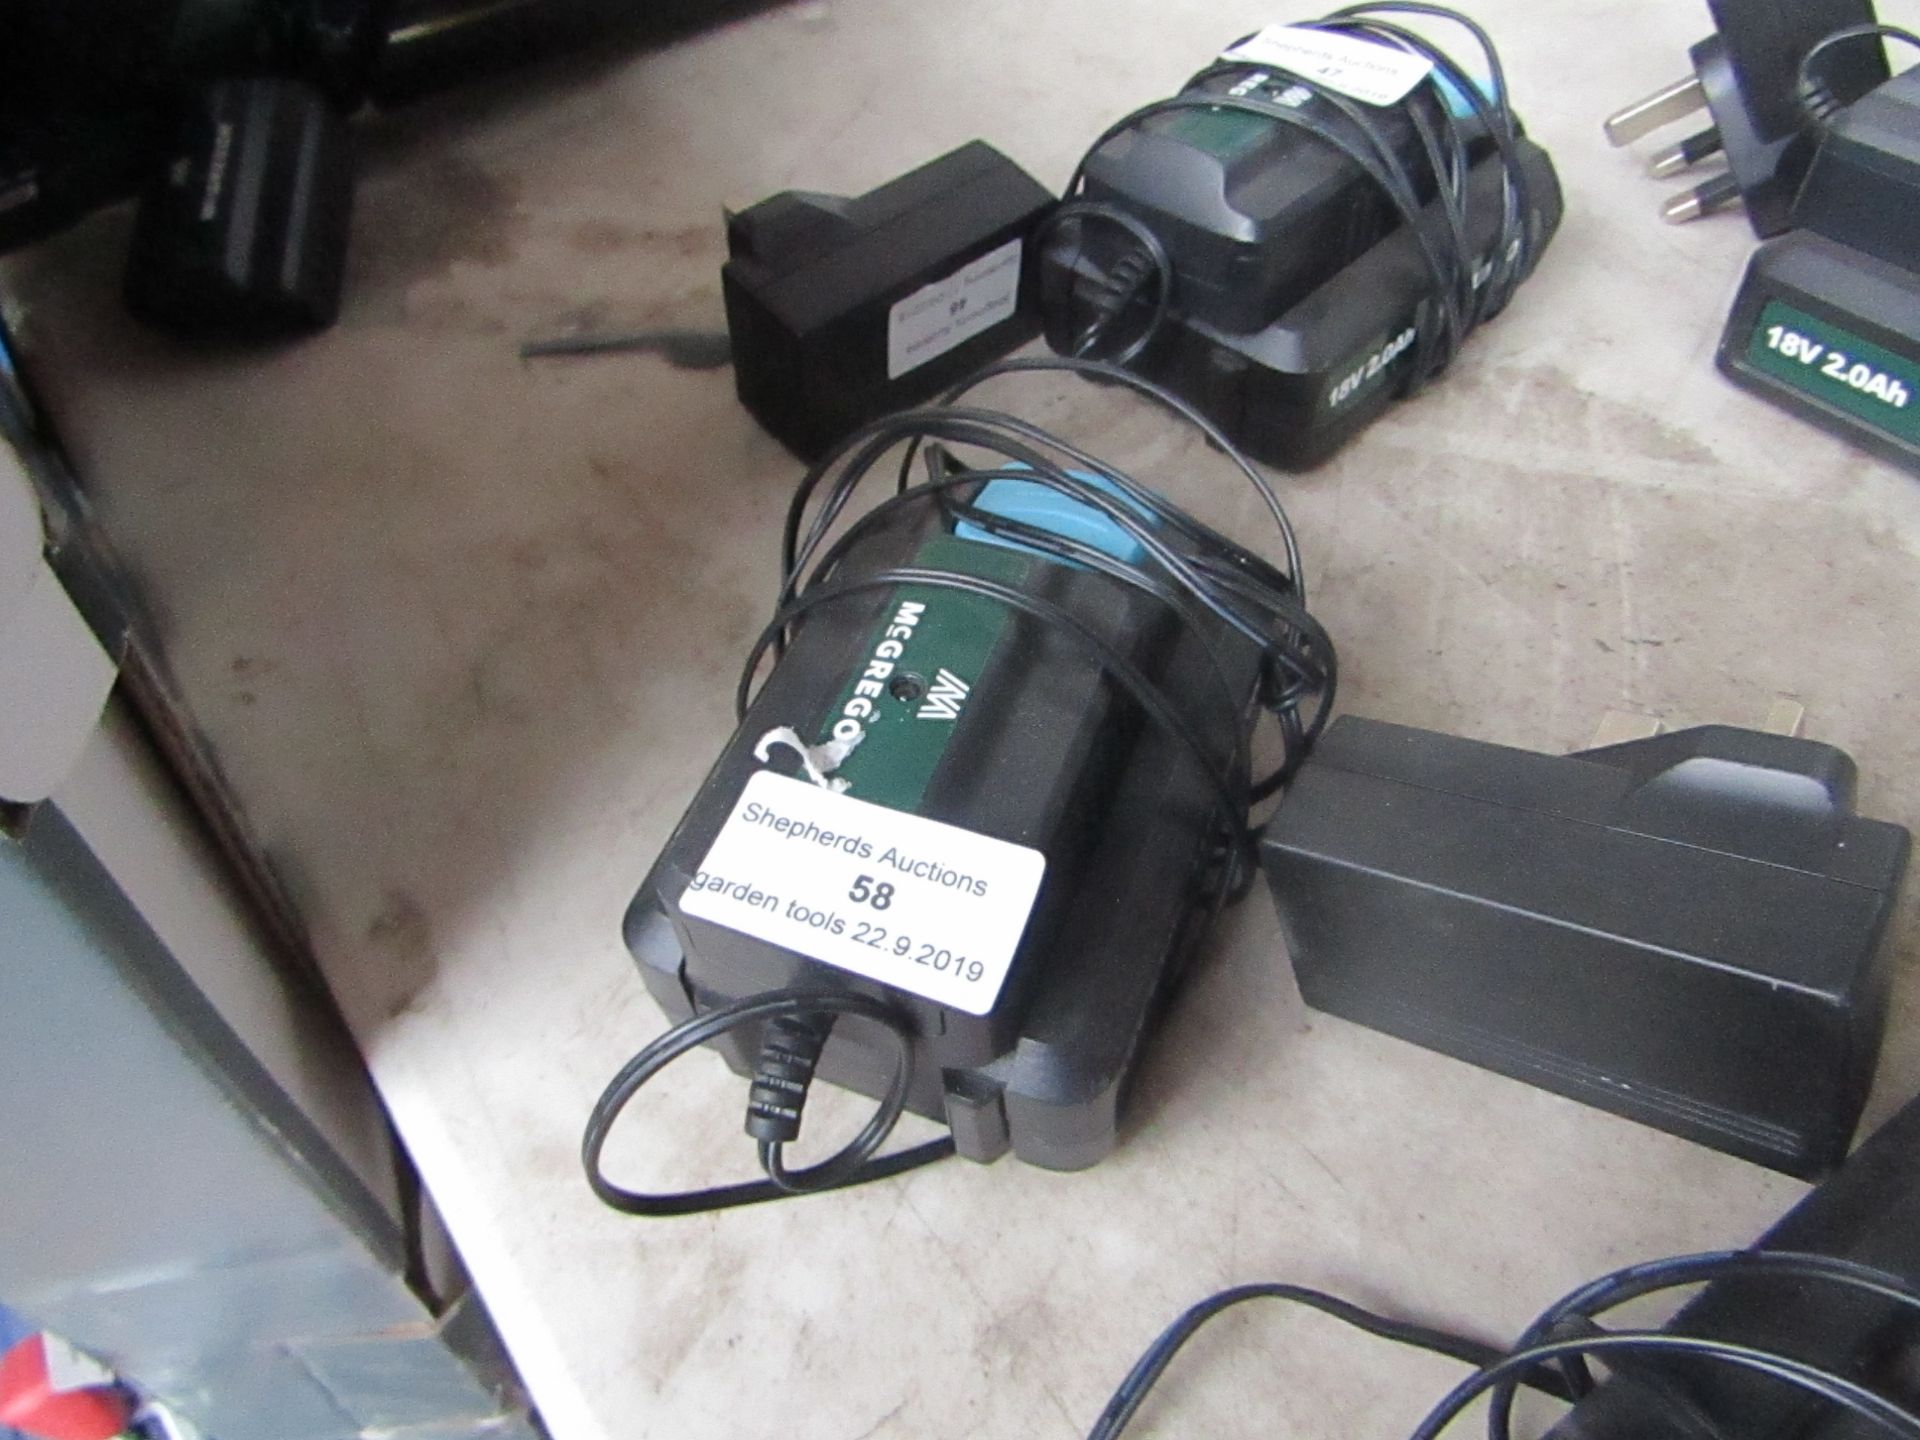 Lotto 58 - McGregor 18V Batterywith Charger.